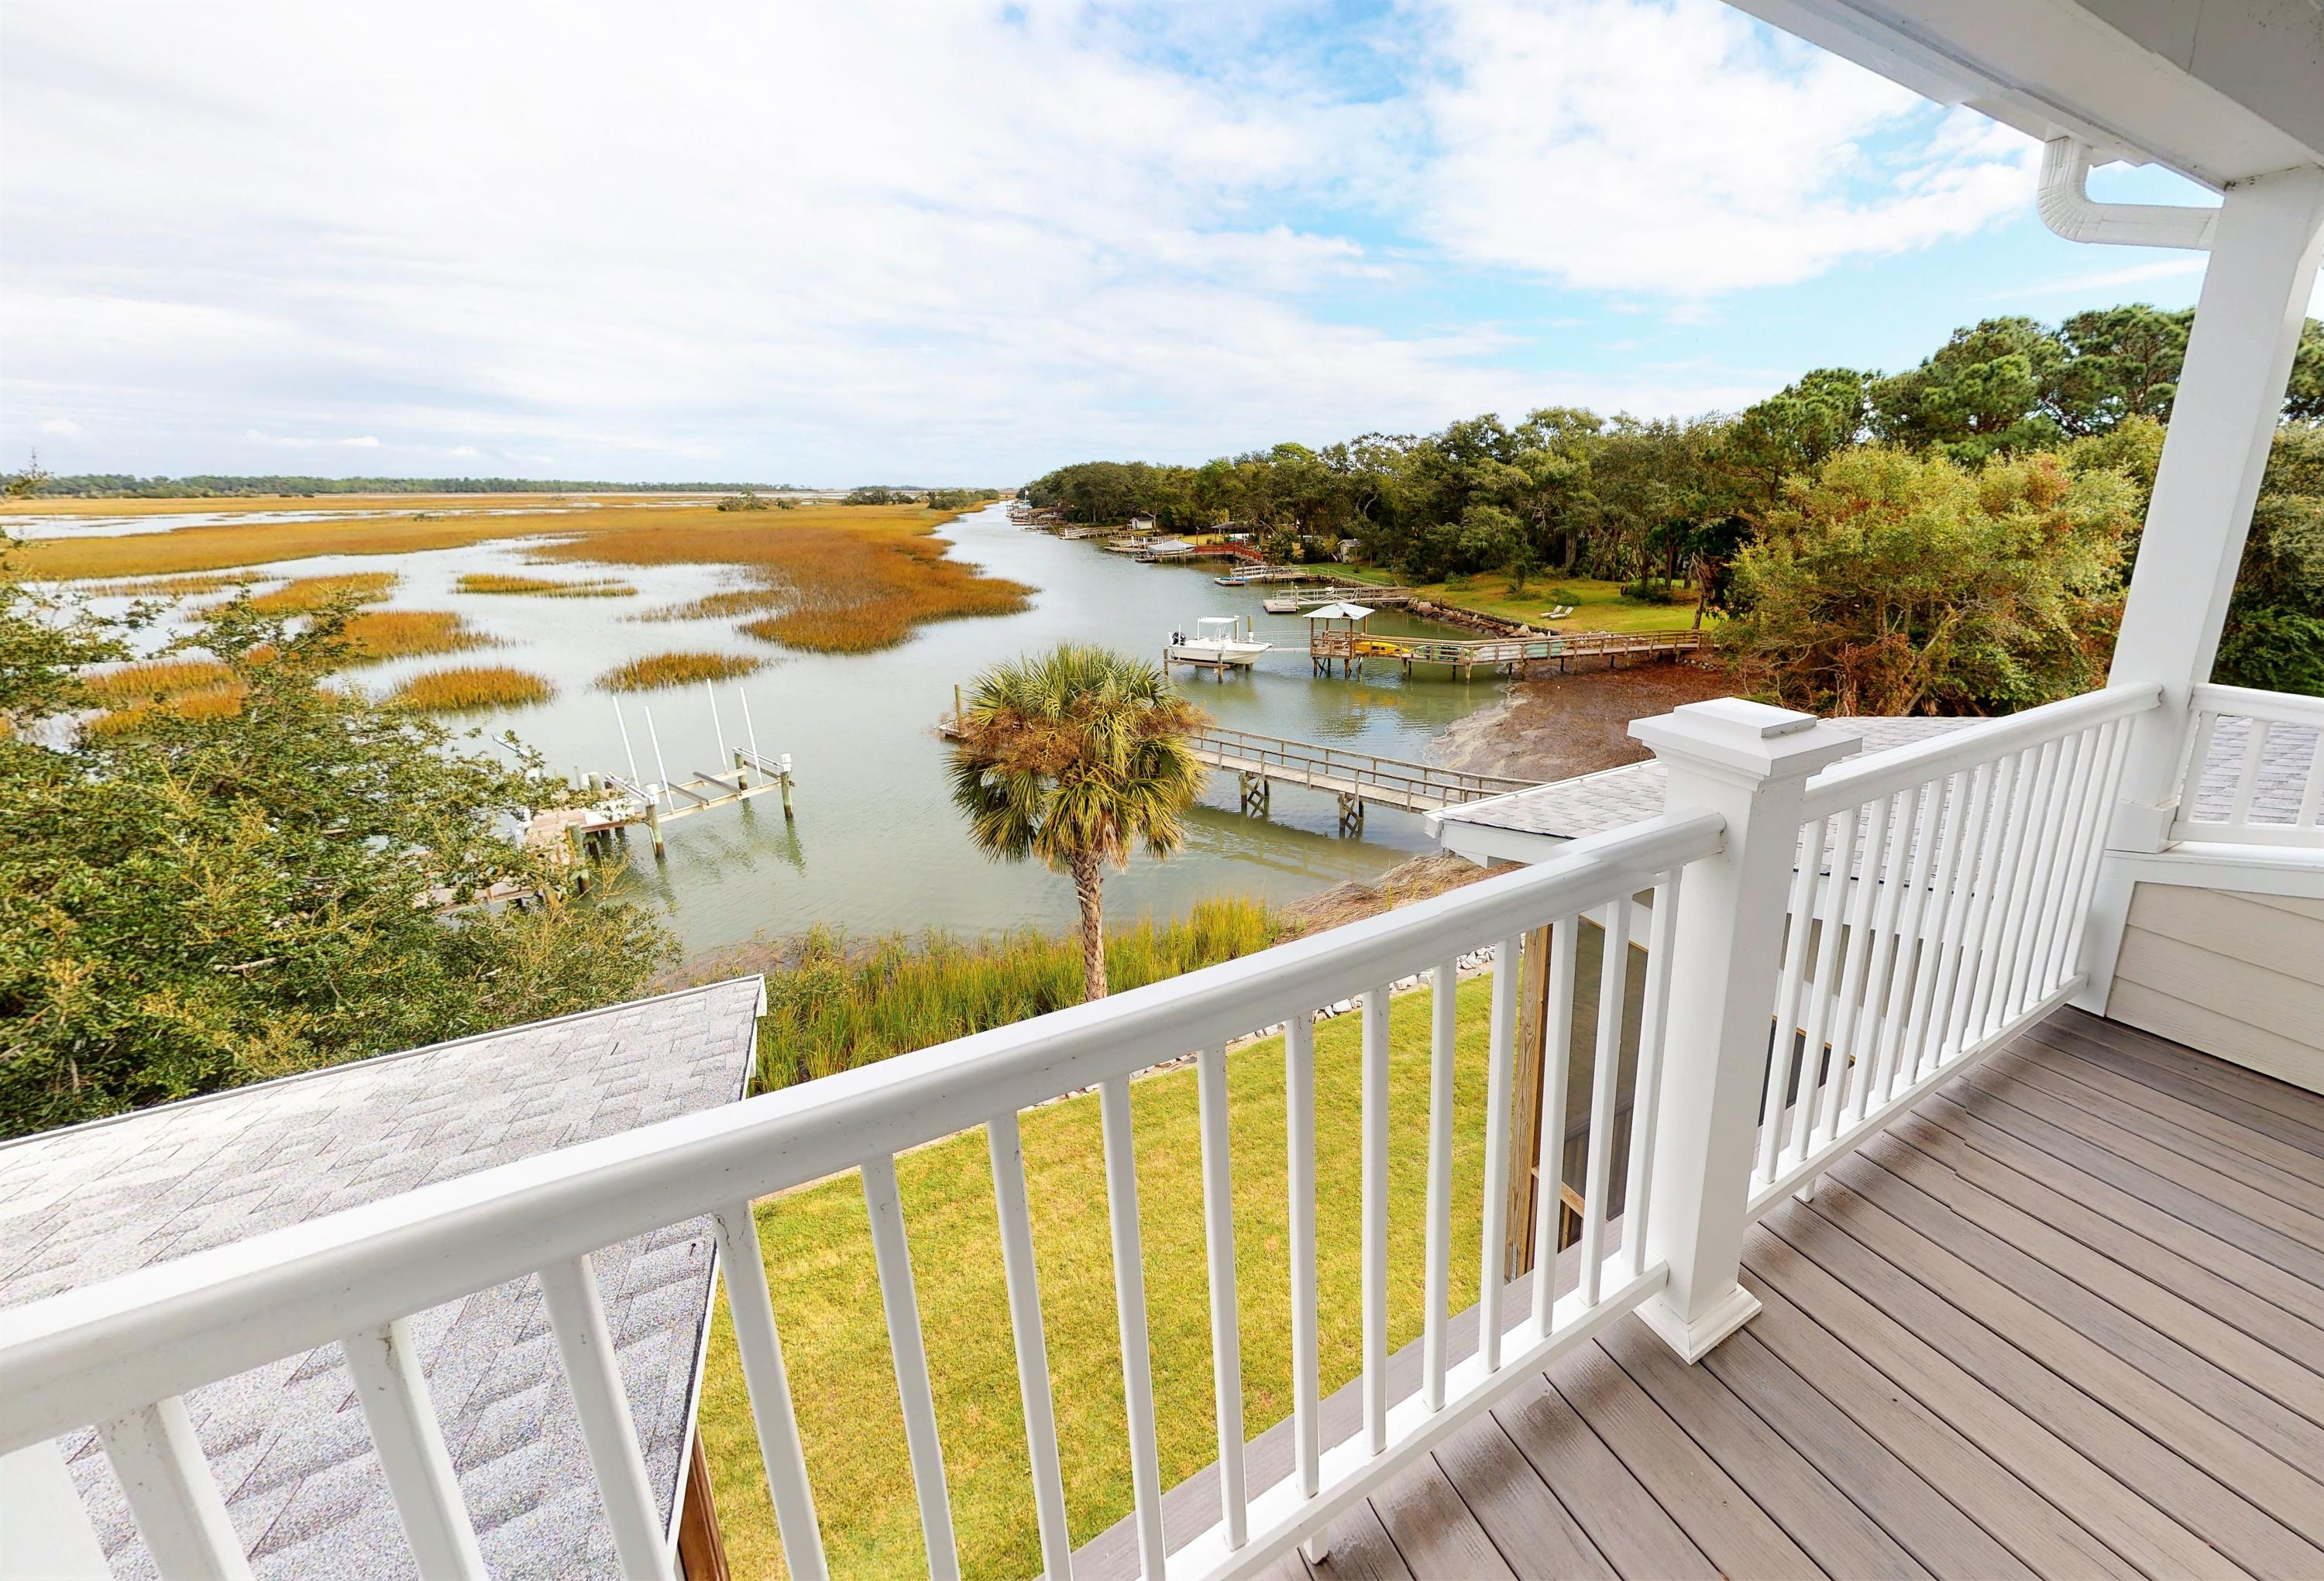 Folly Creek Place Homes For Sale - 2240 Folly, Folly Beach, SC - 19